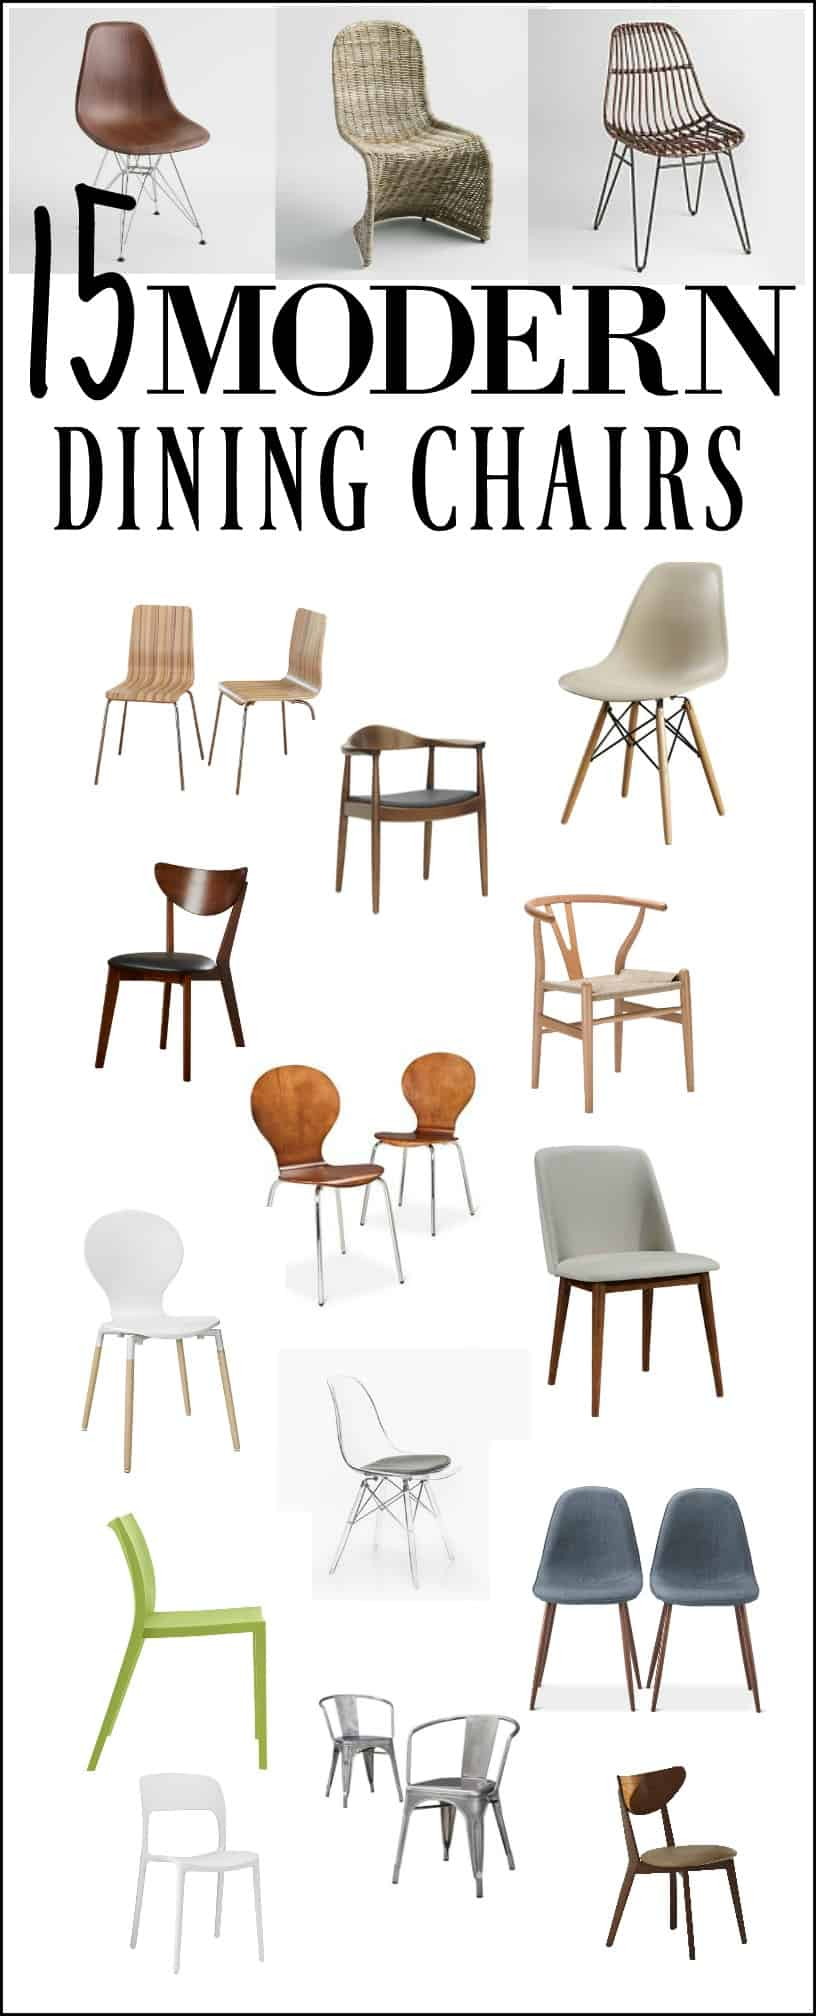 Modern dining chairs that are affordable, stylish and good looking!